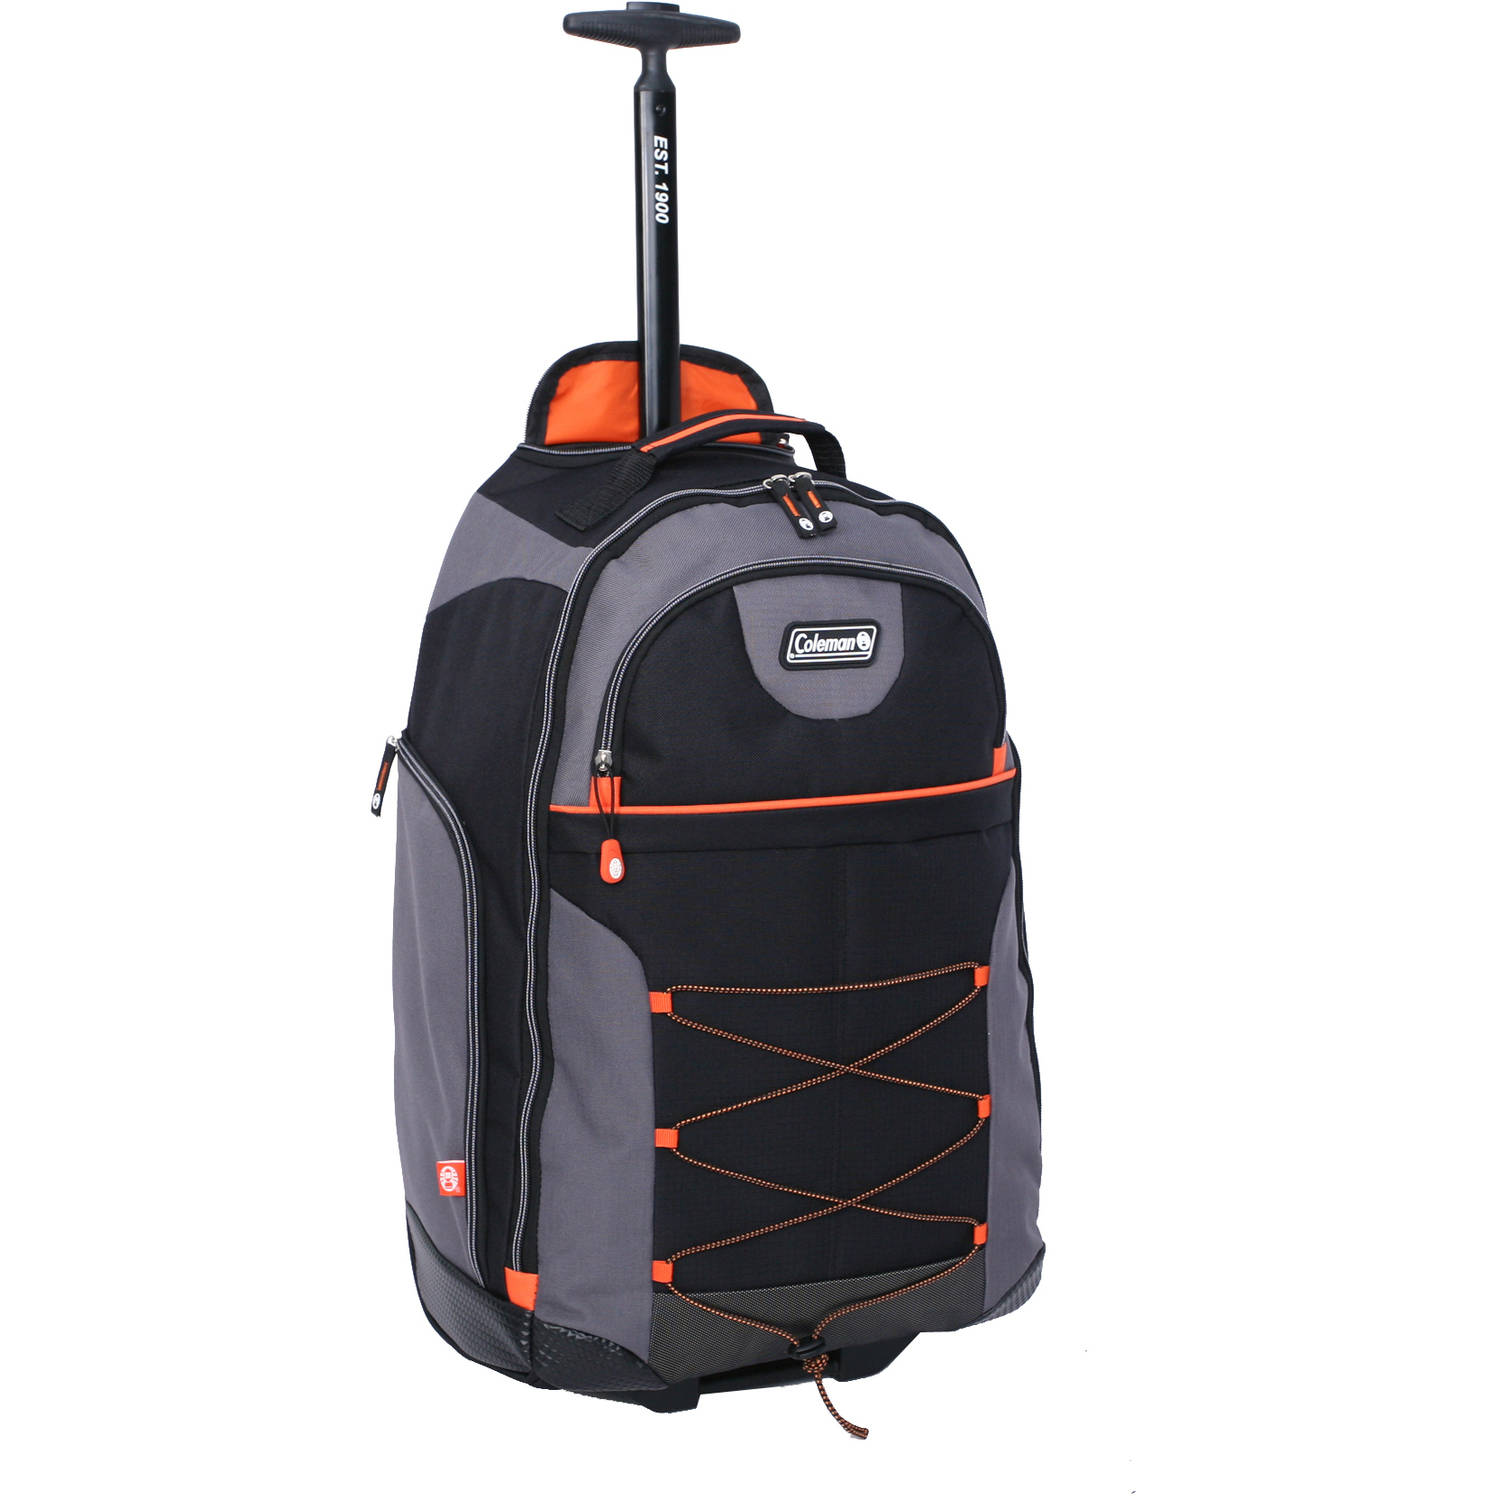 Coleman Rolling Backpack 6OlNh5uF